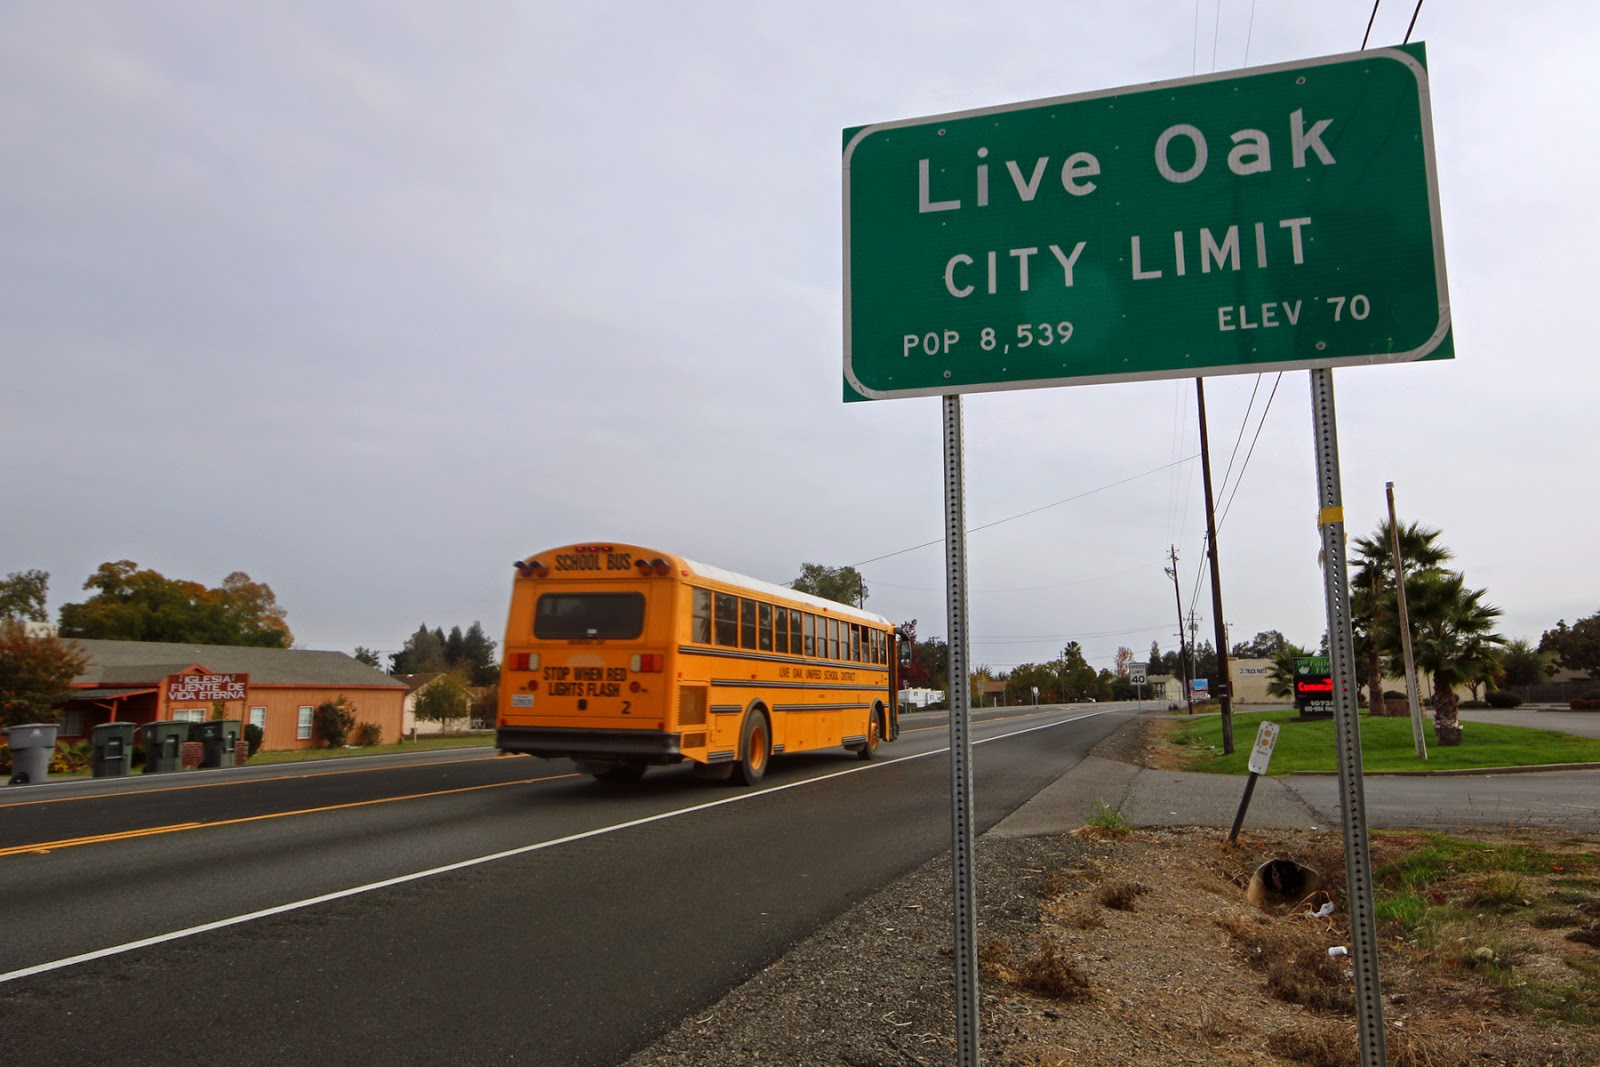 Live Oak, a rice country town with character